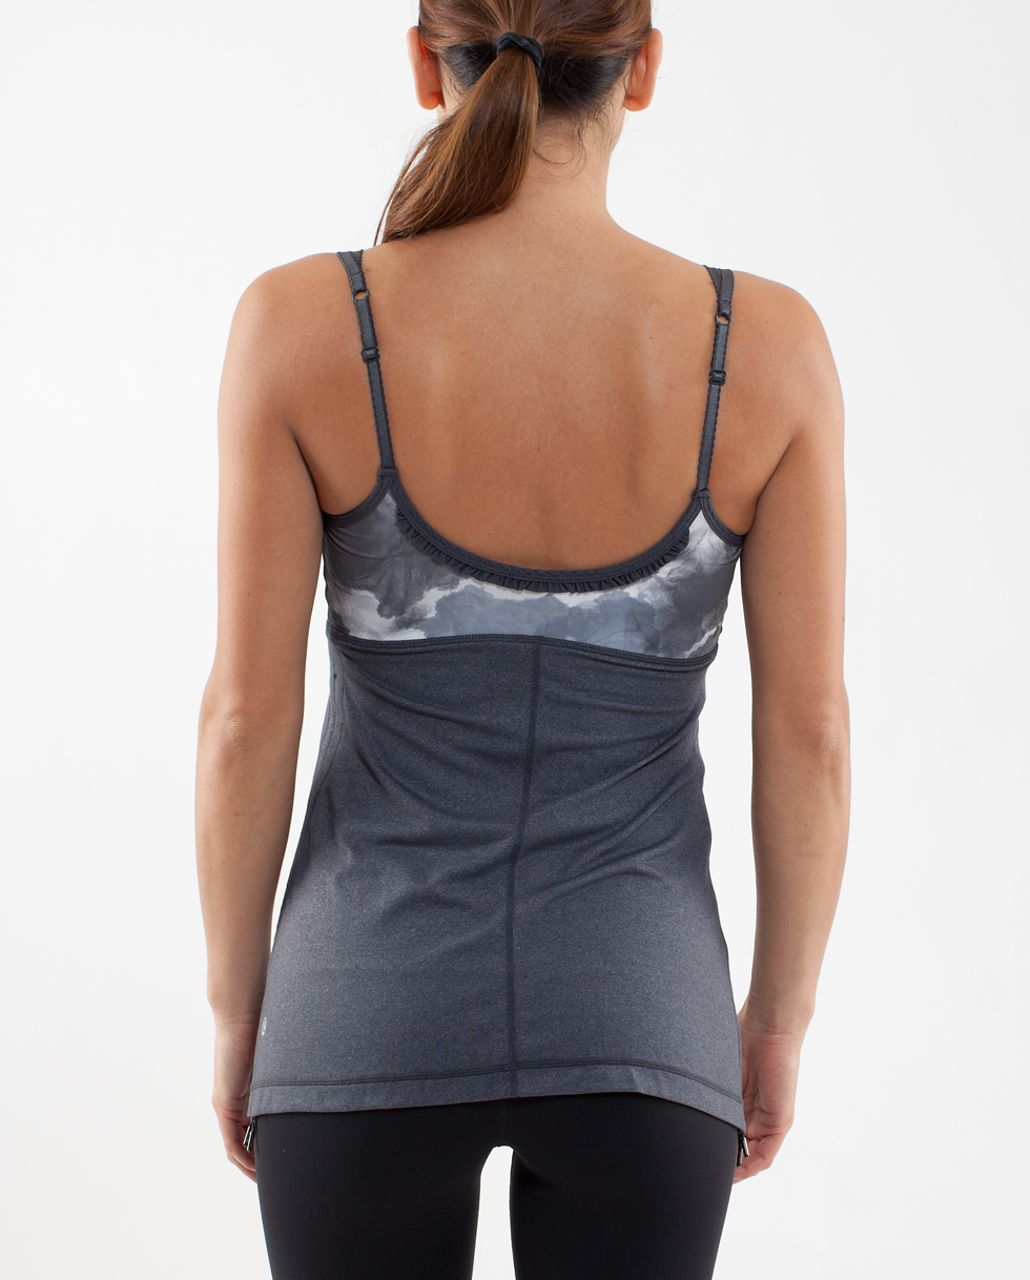 Lululemon Hot 'N Sweaty Tank - Coal /  White Silver Spoon Tinted Canvas Super